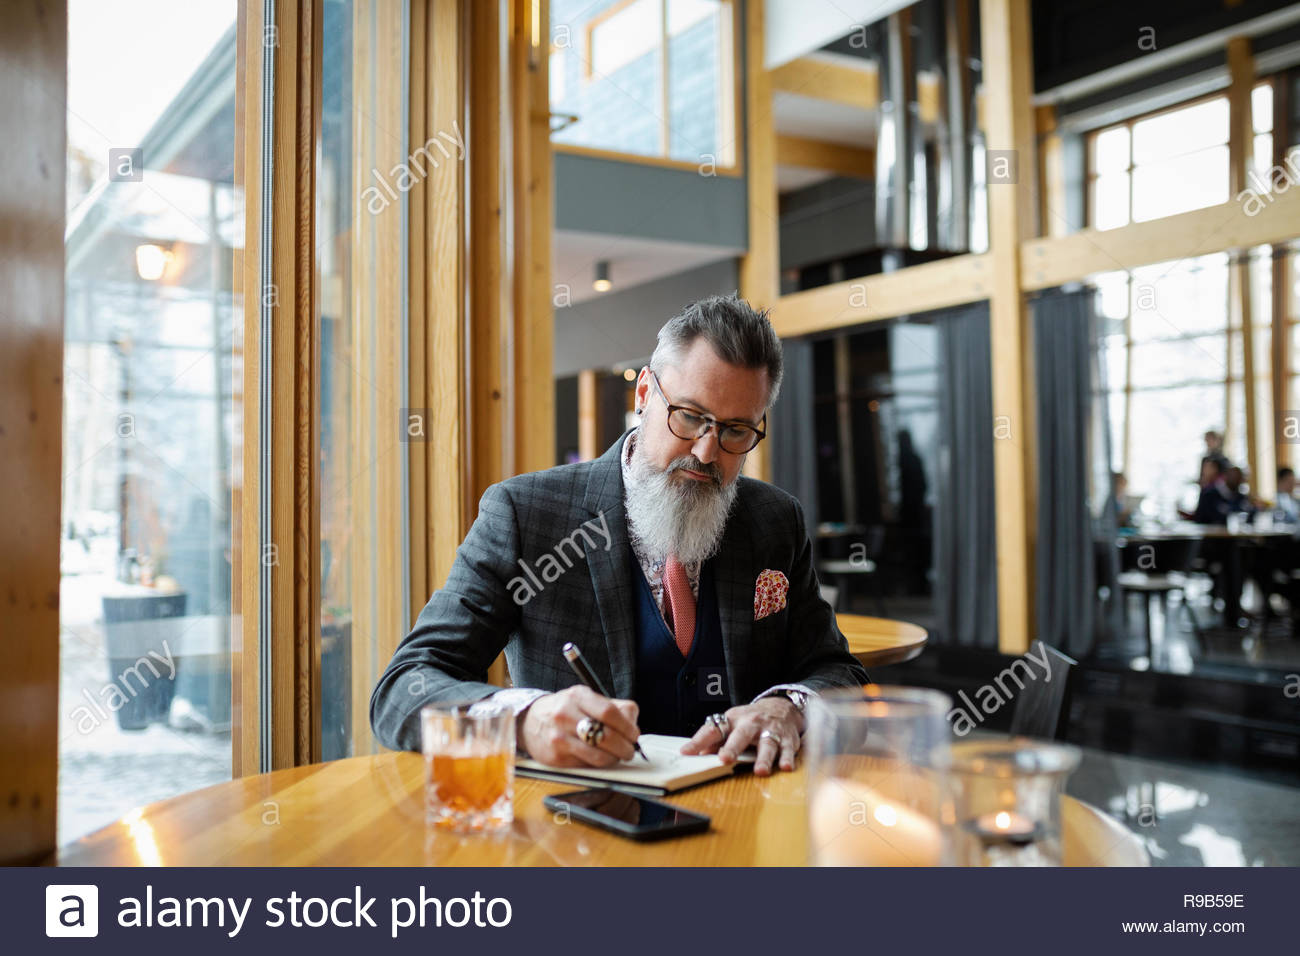 Fashionable hipster businessman with beard writing in notebook at restaurant table - Stock Image